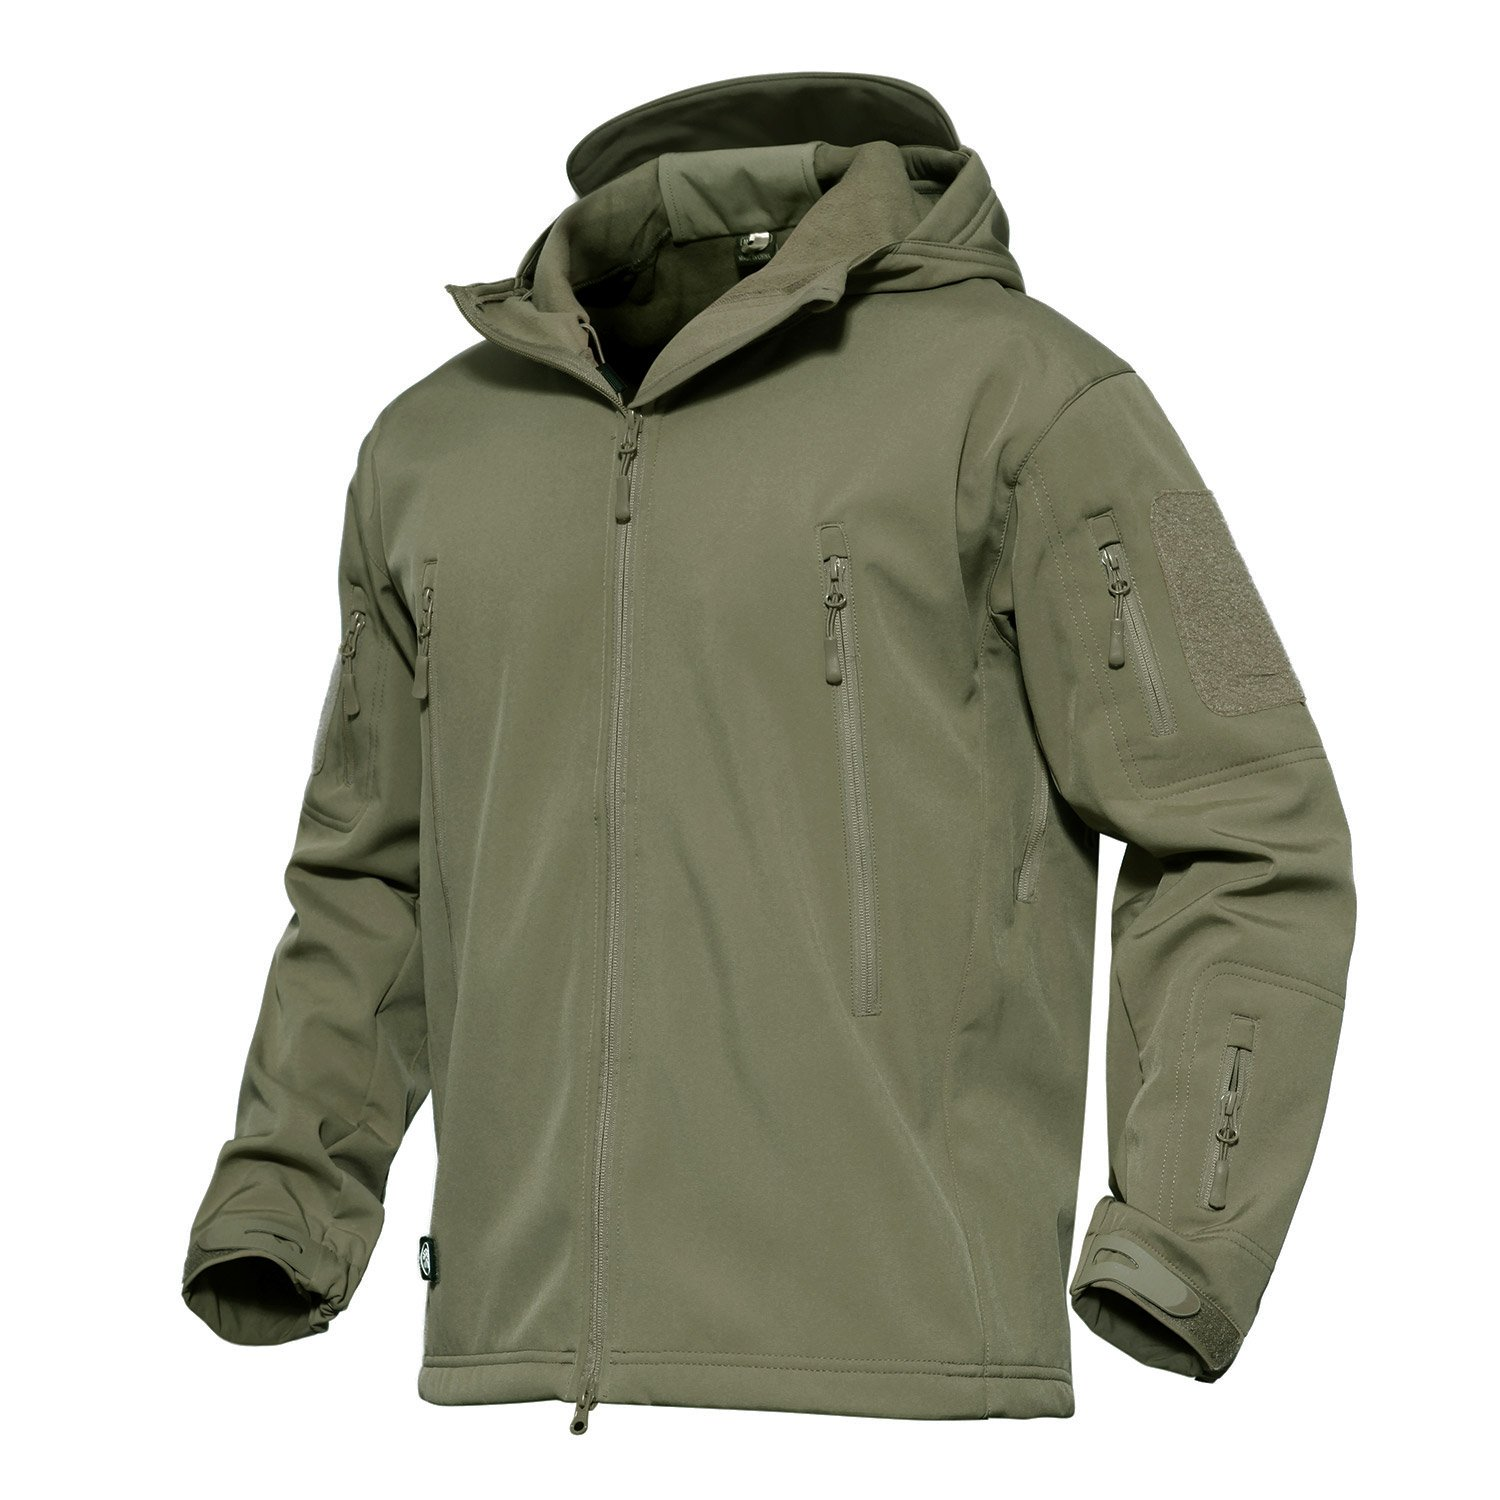 MAGCOMSEN Men's Tactical Army Outdoor Coat Camouflage Softshell Jacket Hunting Jacket YCADL-2